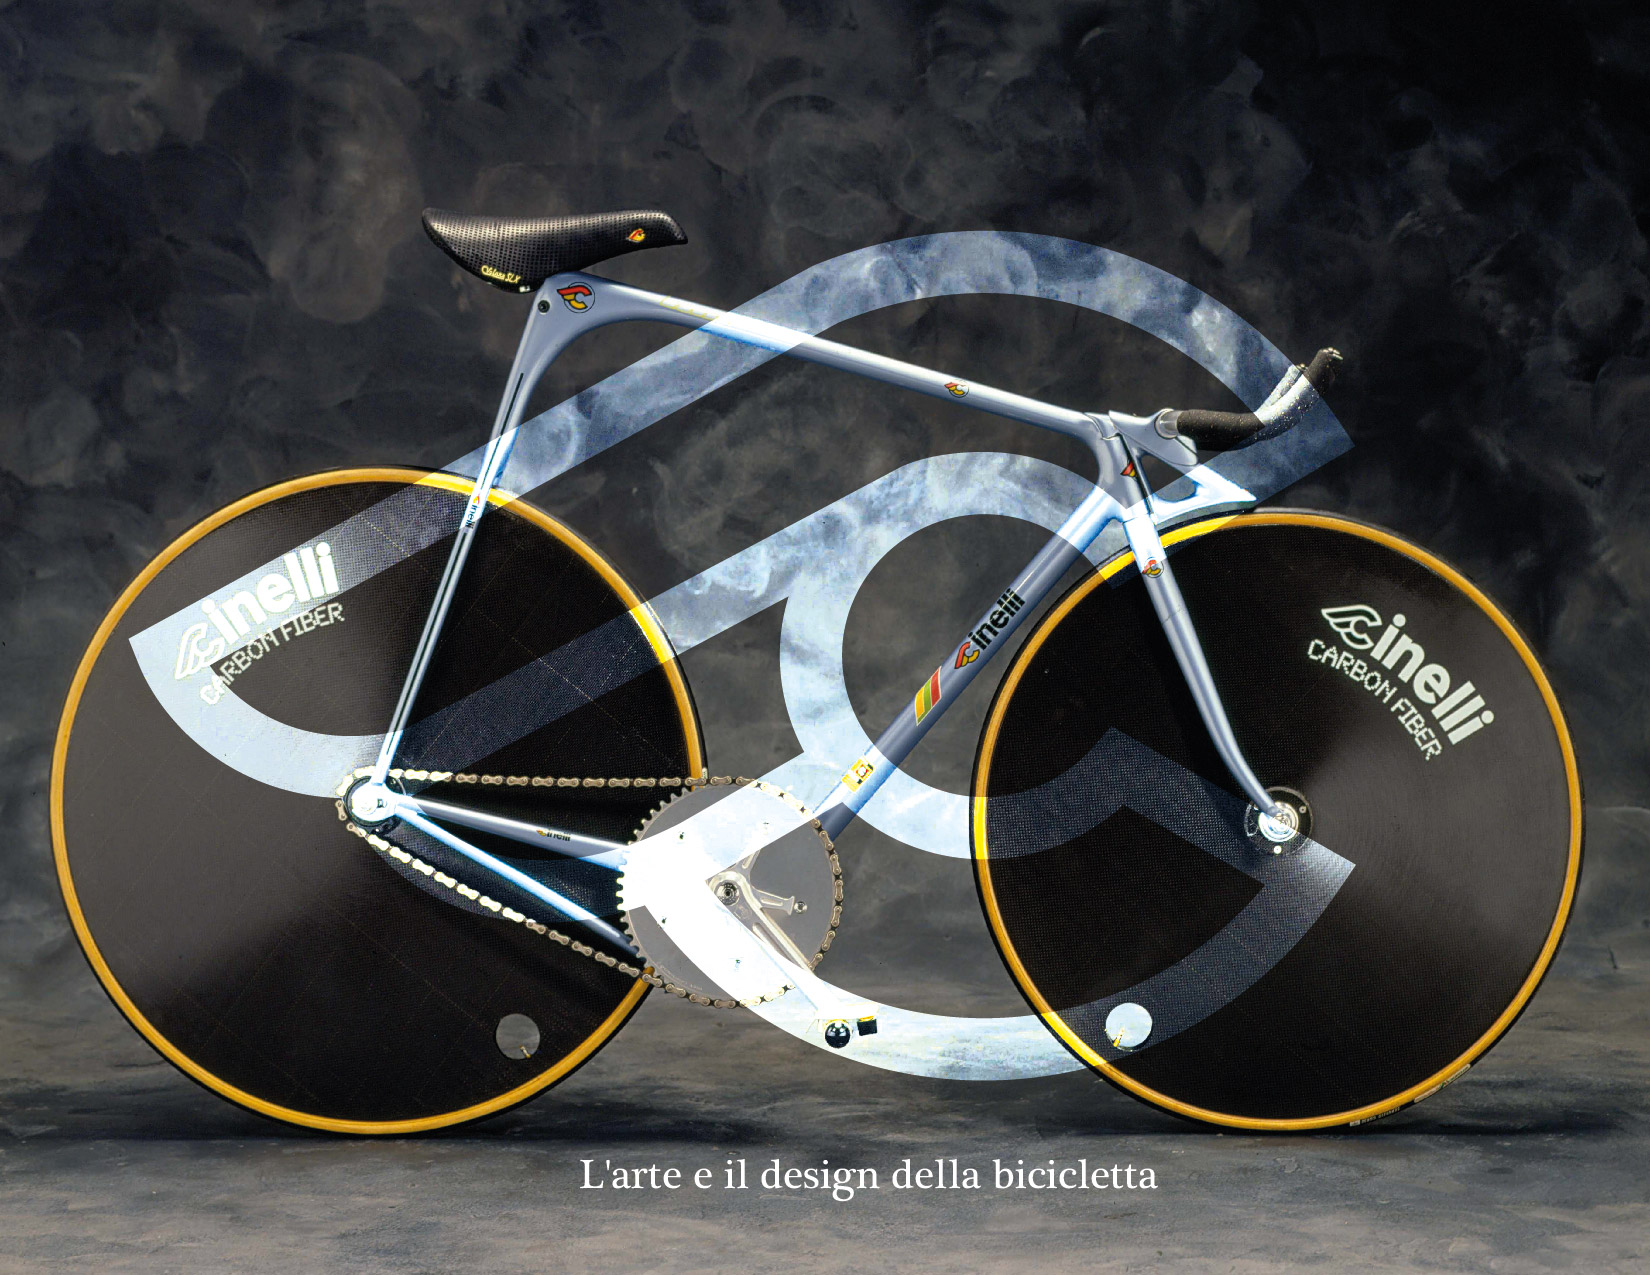 The art and design of the bicycle - Cinelli